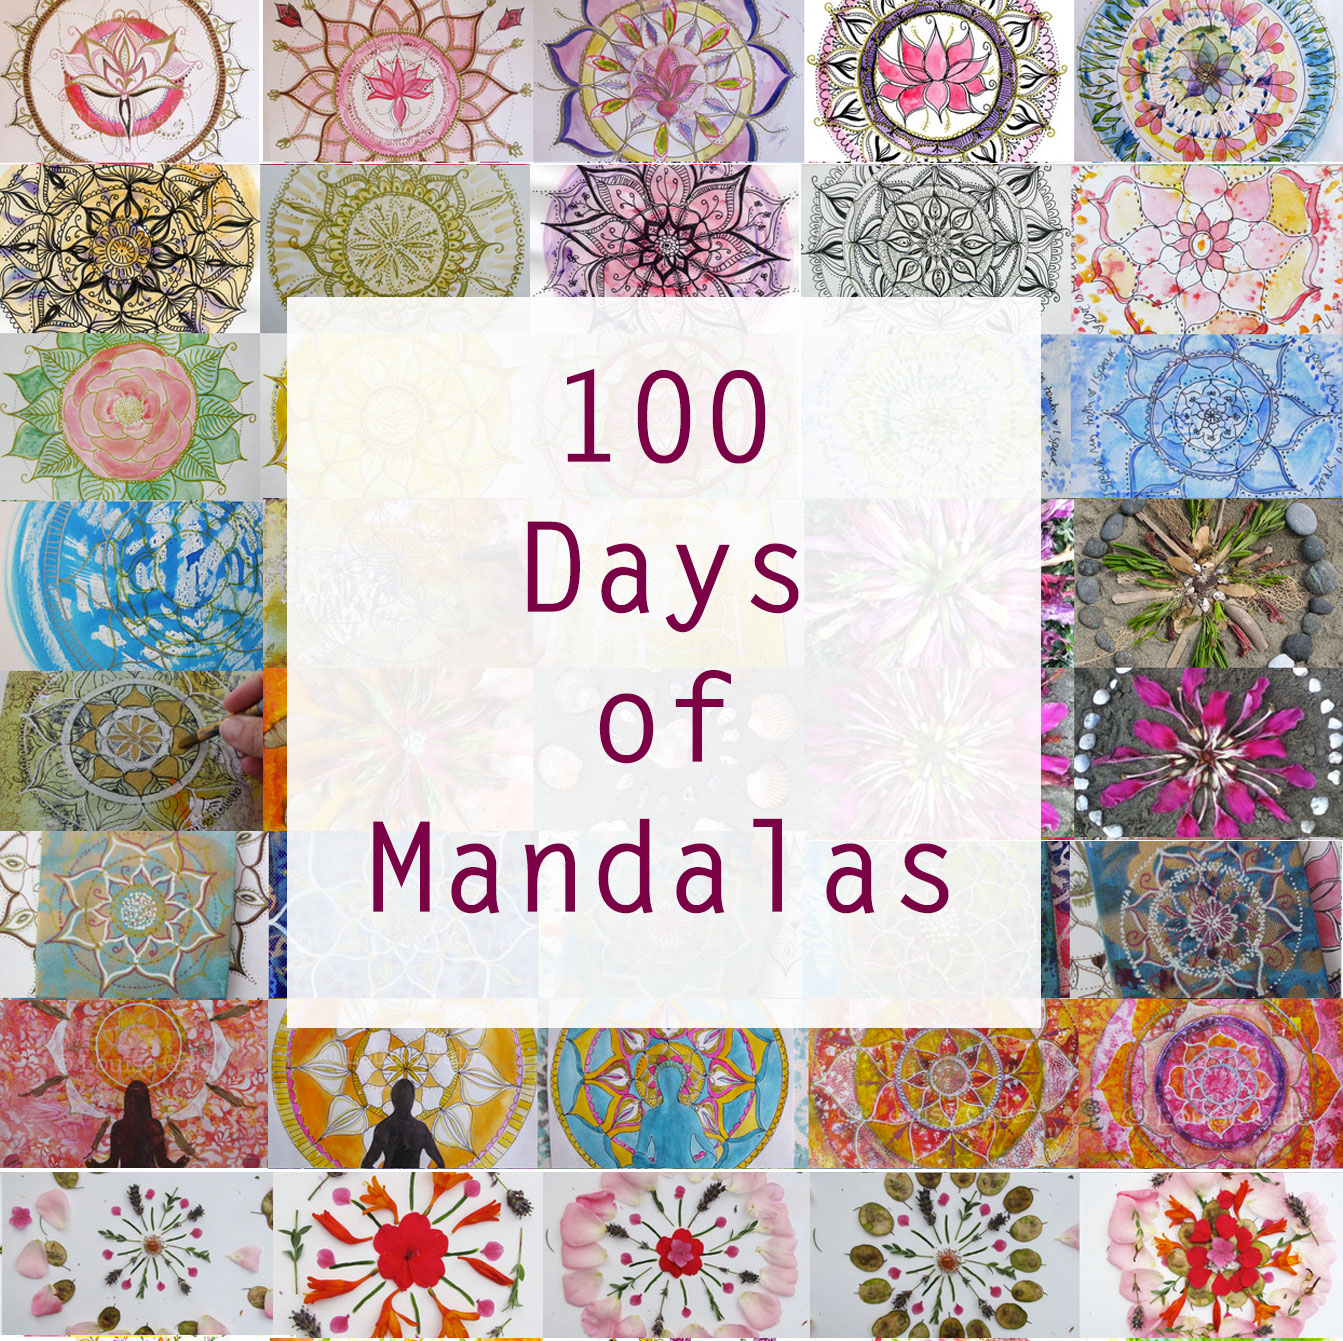 100 Days of Mandalas with Louise Gale